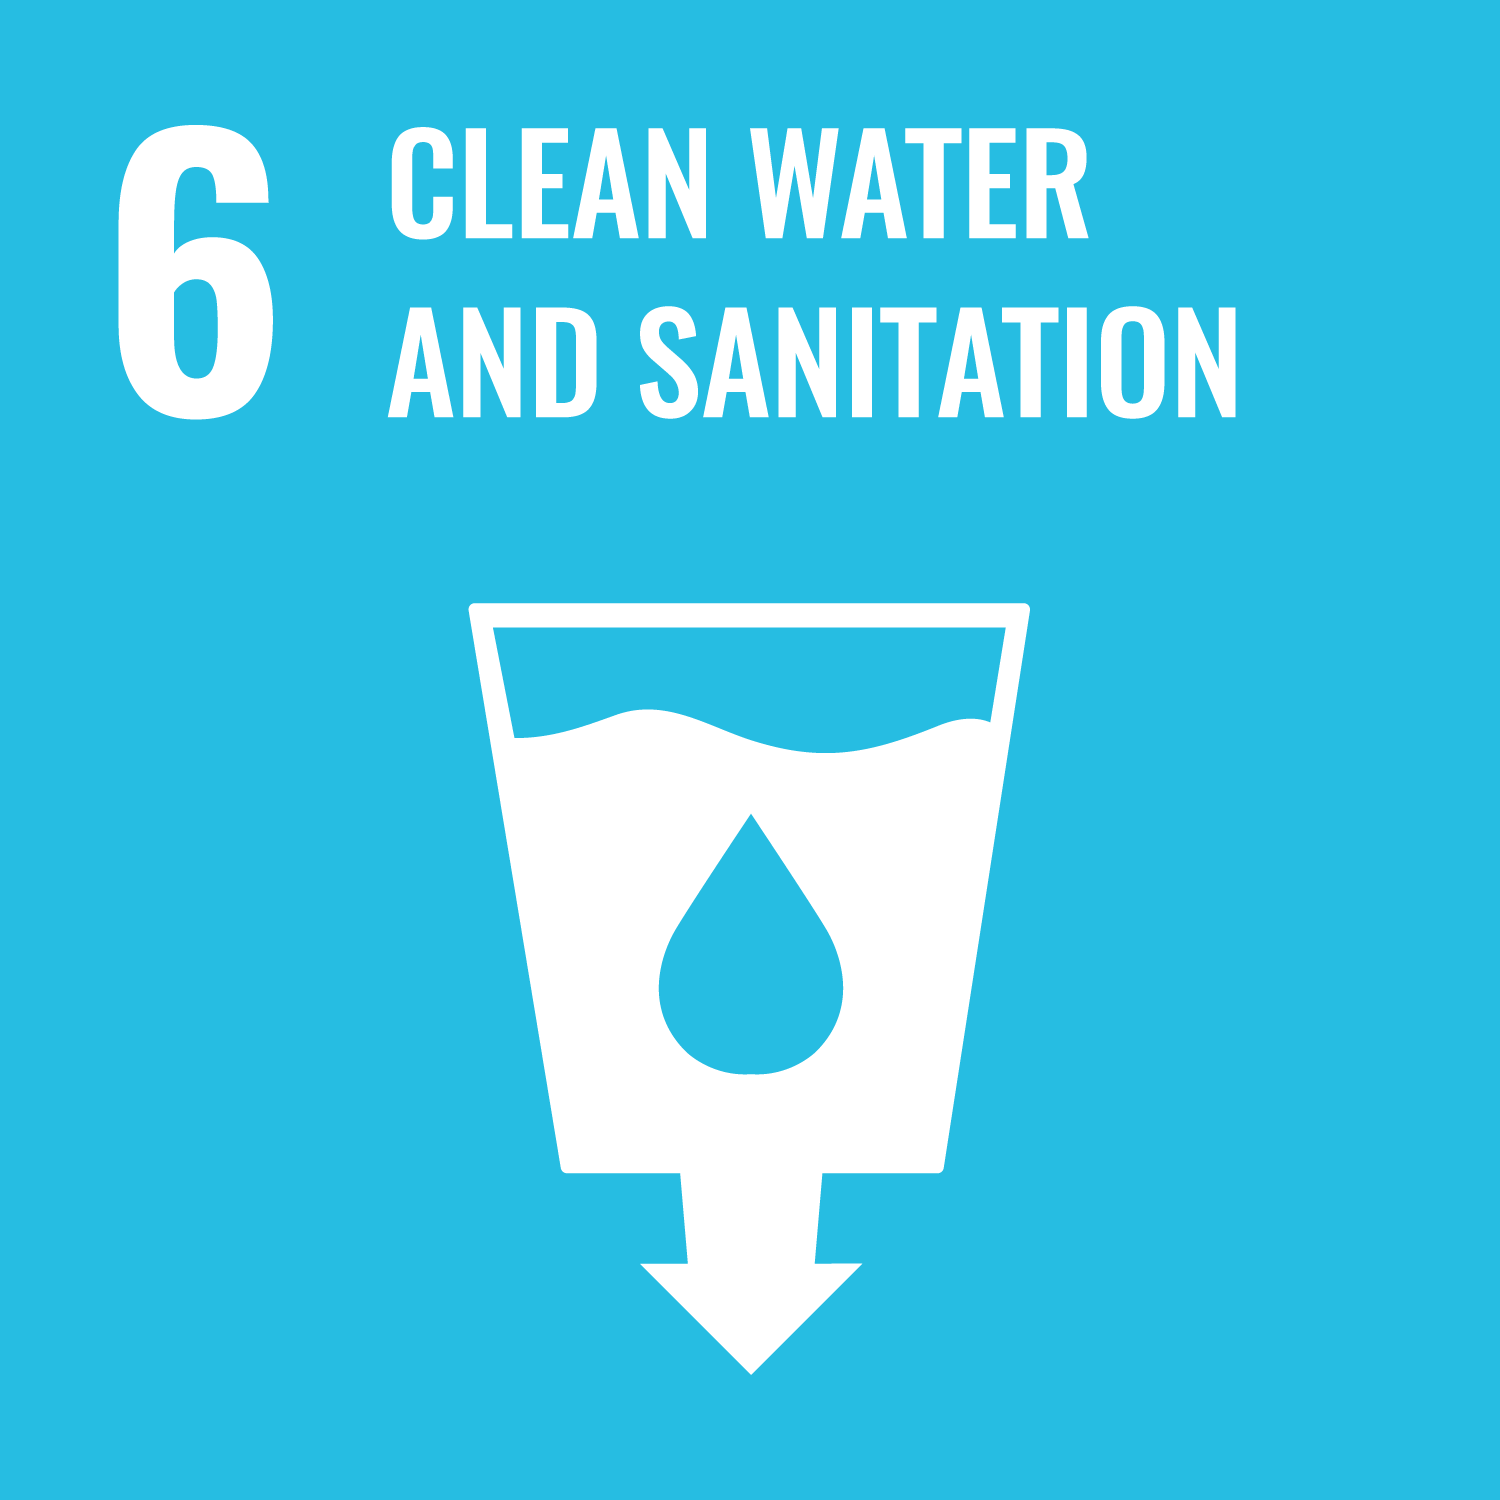 UN Sustainable Development Goal 6: Clean Water and Sanitation